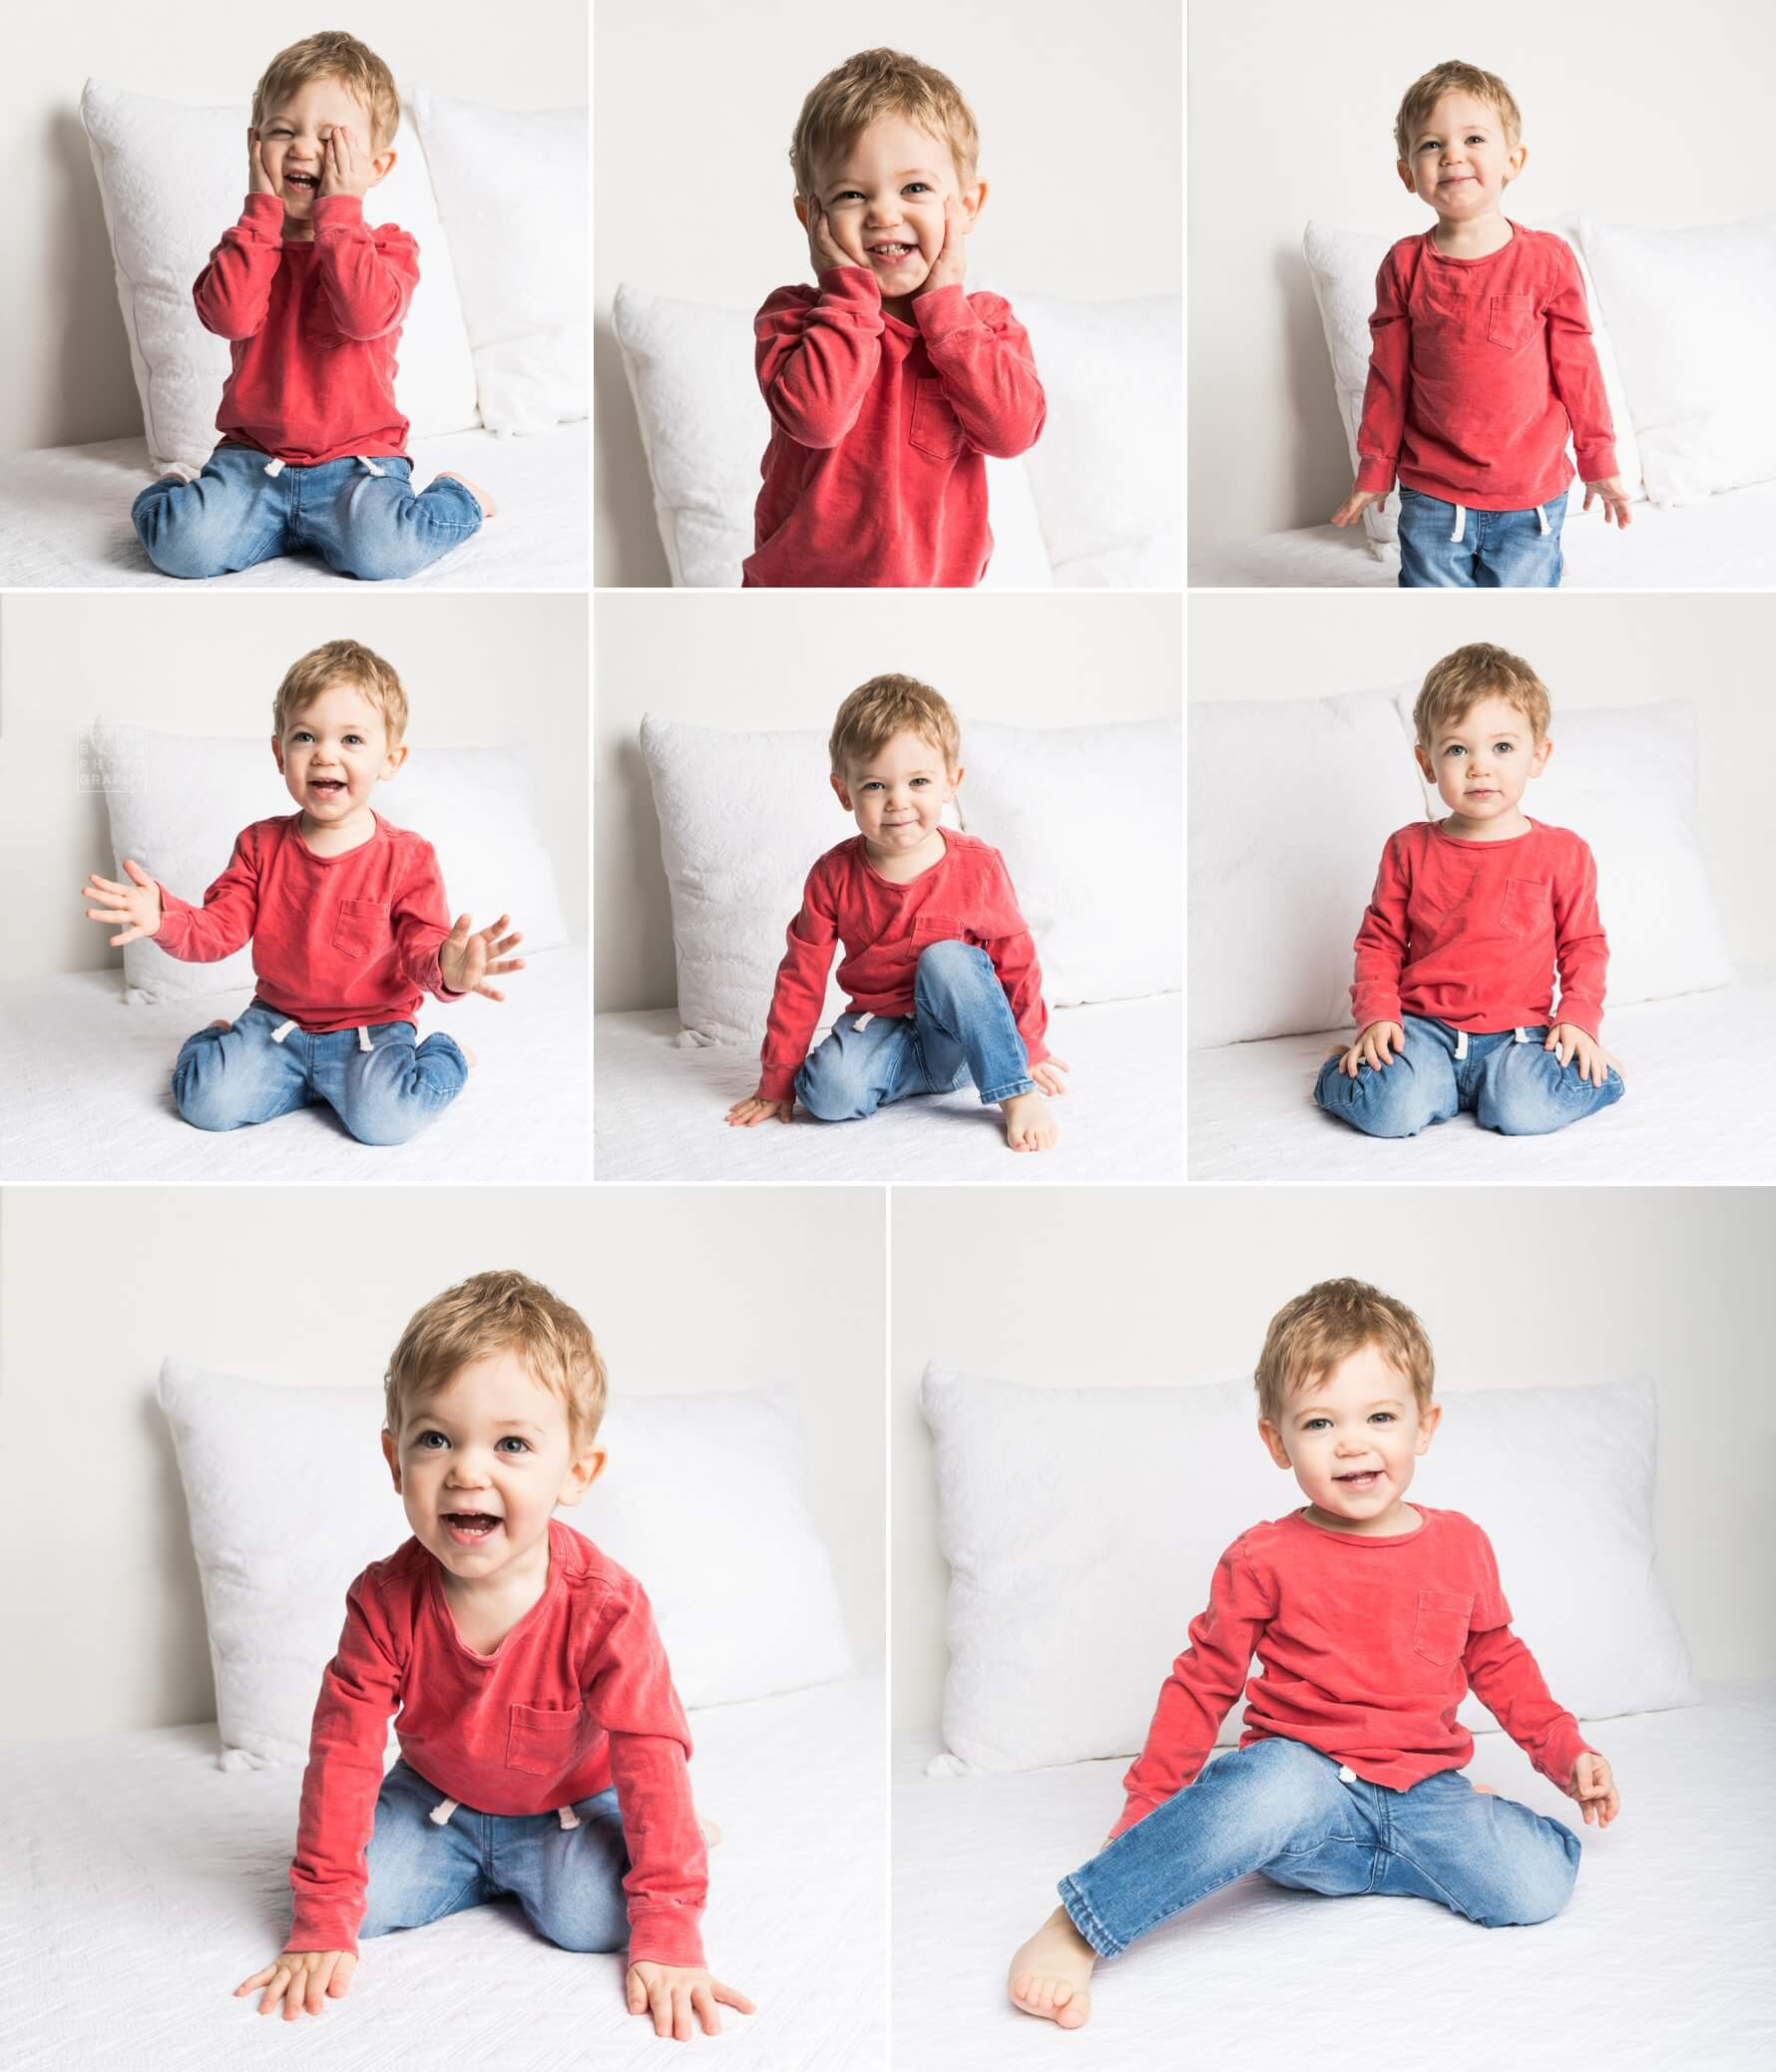 collage of images from a 2 year boys photog session pittsburgh, pa